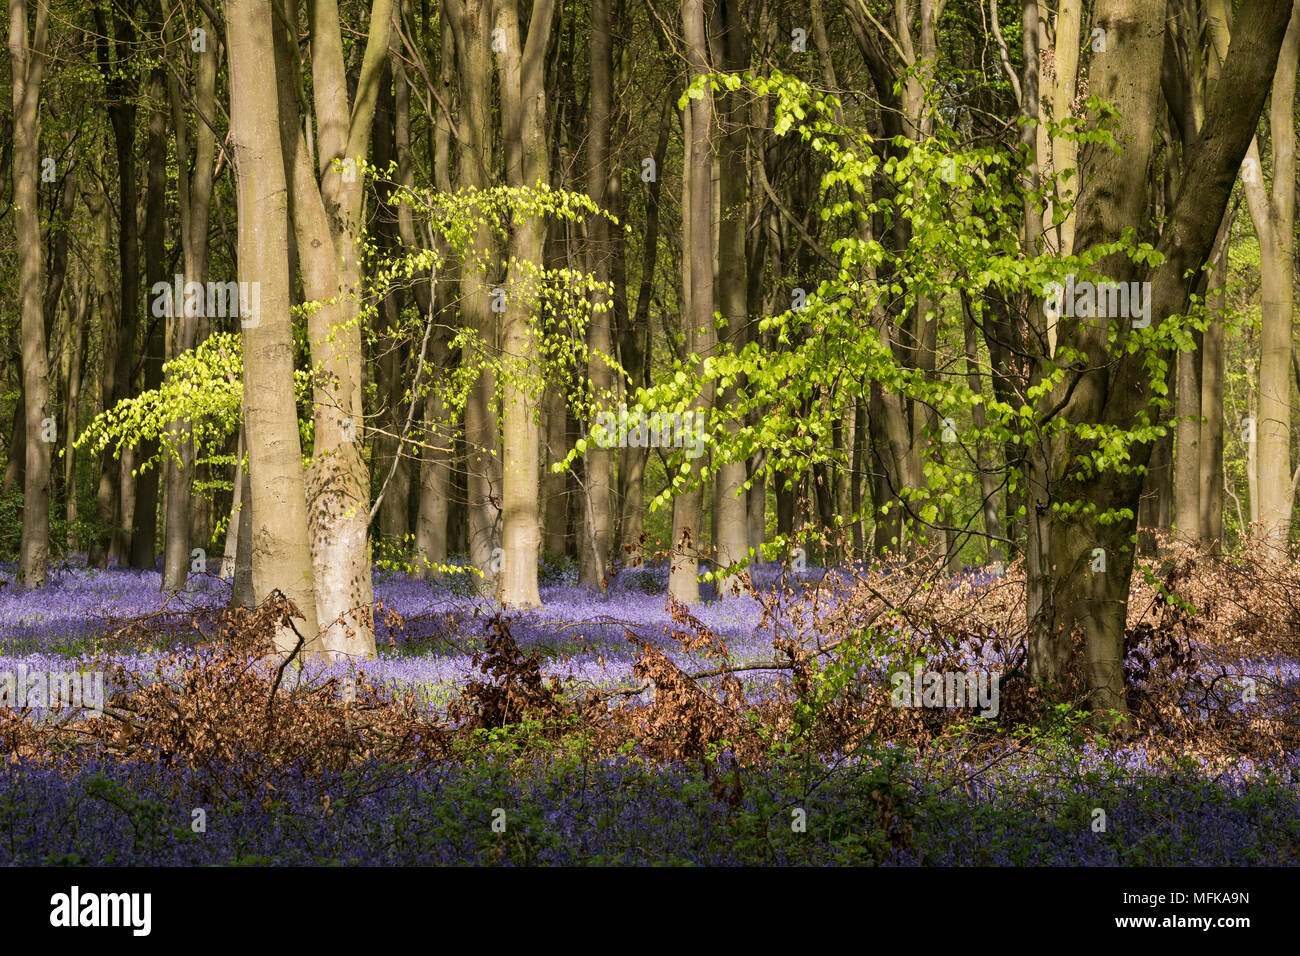 Micheldever, Hampshire. 26th Apr, 2018. UK weather, April 26th 2018 - Sunlight breaks through a canopy of fresh green Beech tree leaves onto a carpet of native English Bluebells (Hyacinthoides non-scripta) in woods near to Micheldever in Hampshire, England. Credit: RTimages/Alamy Live News - Stock Image